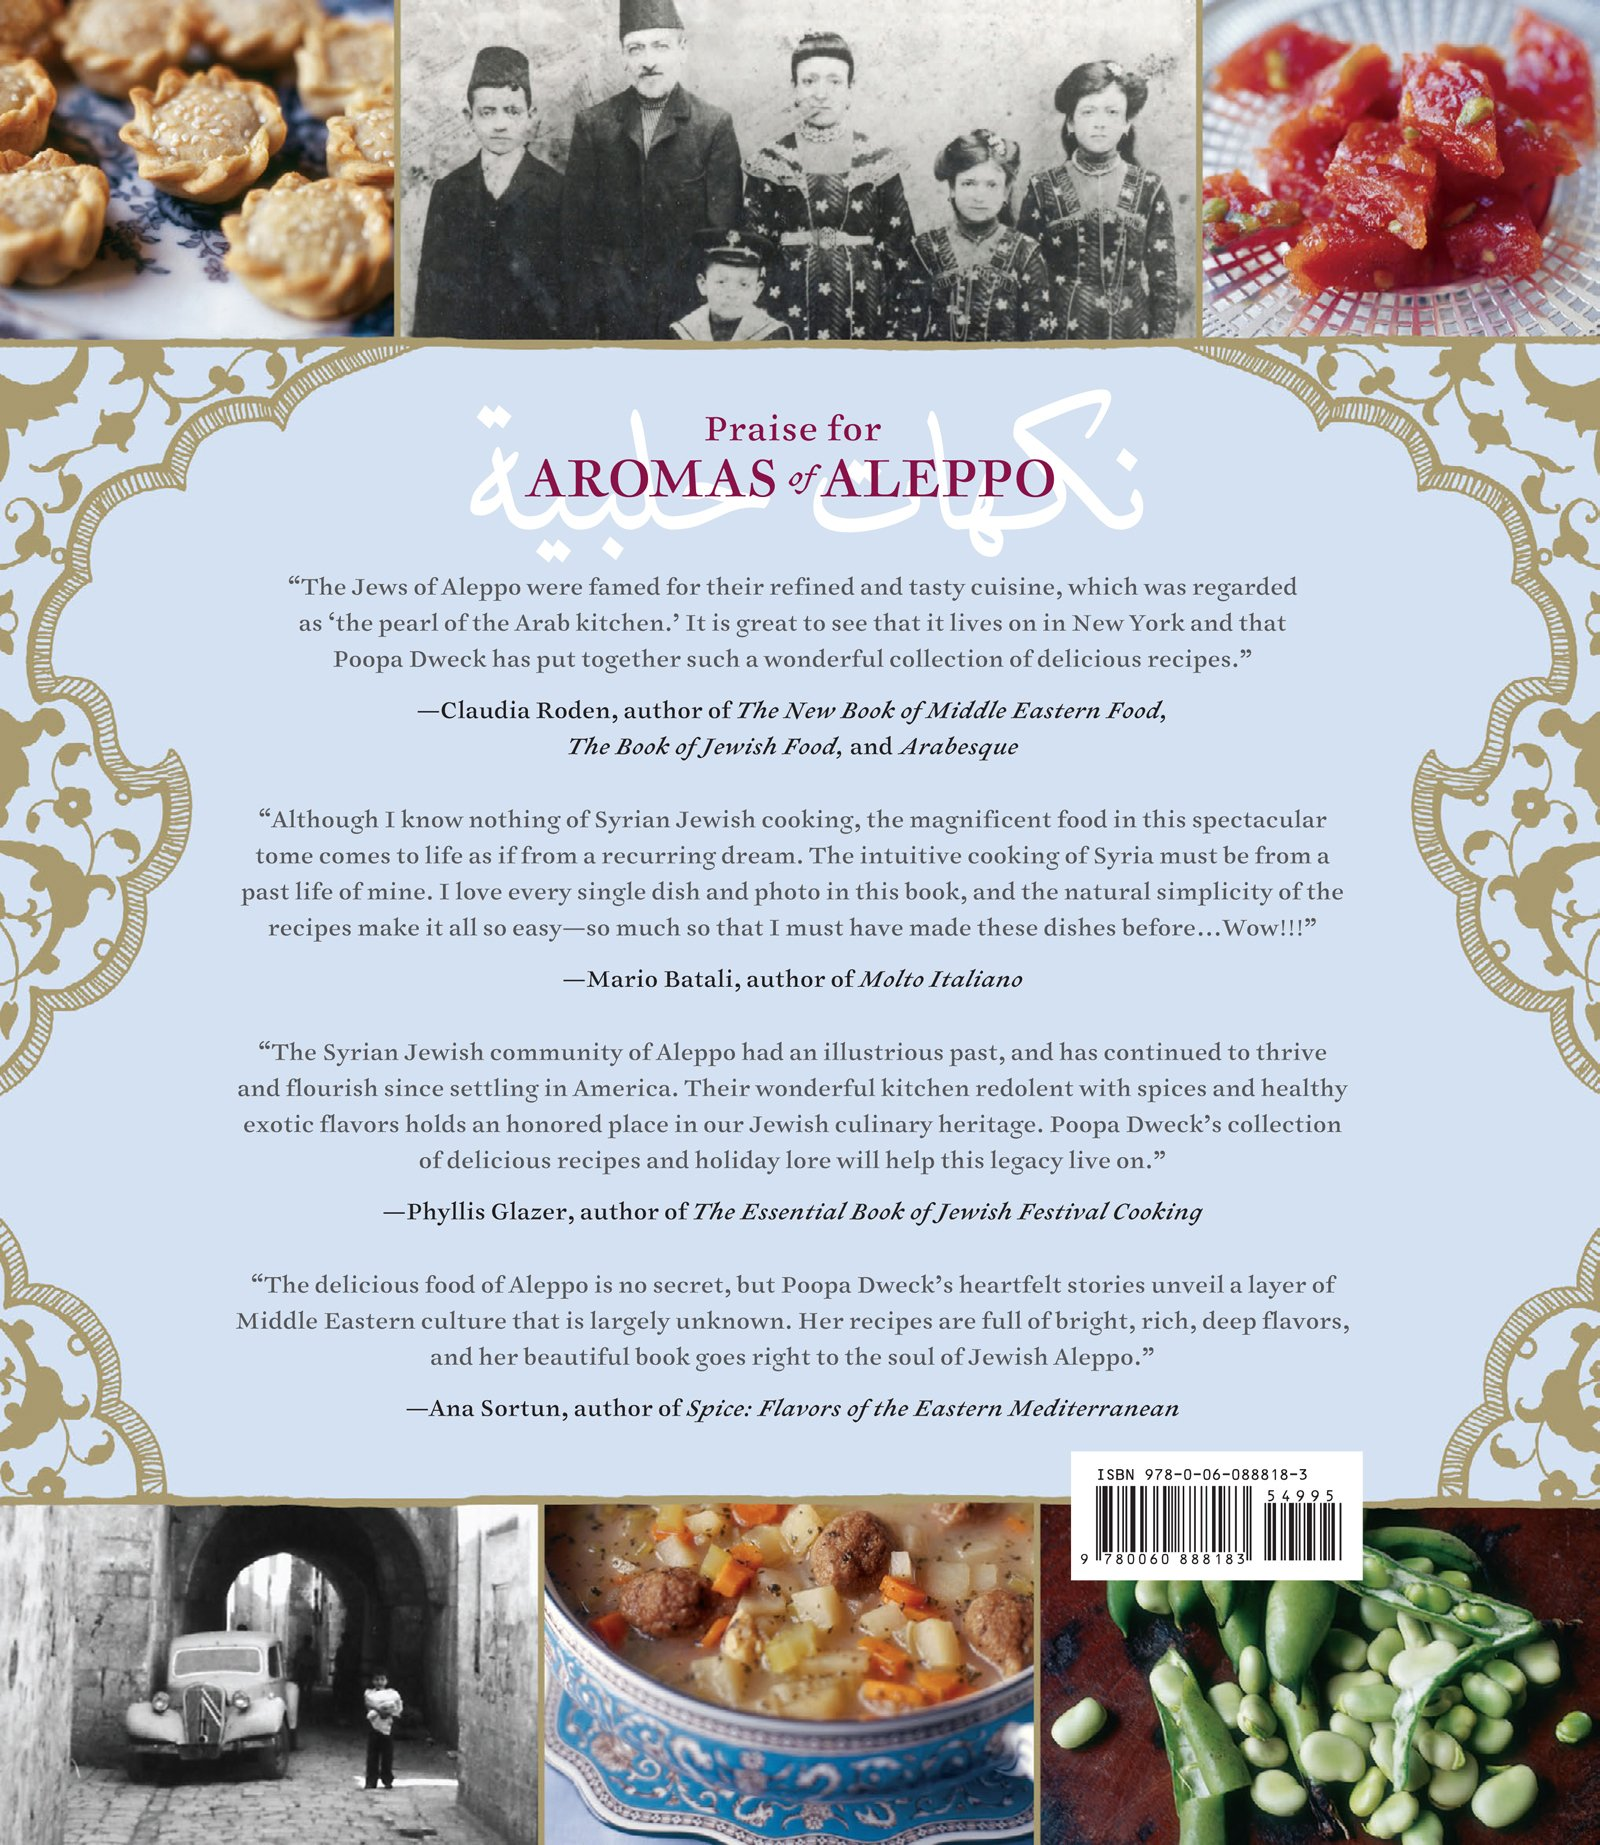 Aromas of aleppo the legendary cuisine of syrian jews poopa aromas of aleppo the legendary cuisine of syrian jews poopa dweck michael j cohen quentin bacon 9780060888183 amazon books forumfinder Images